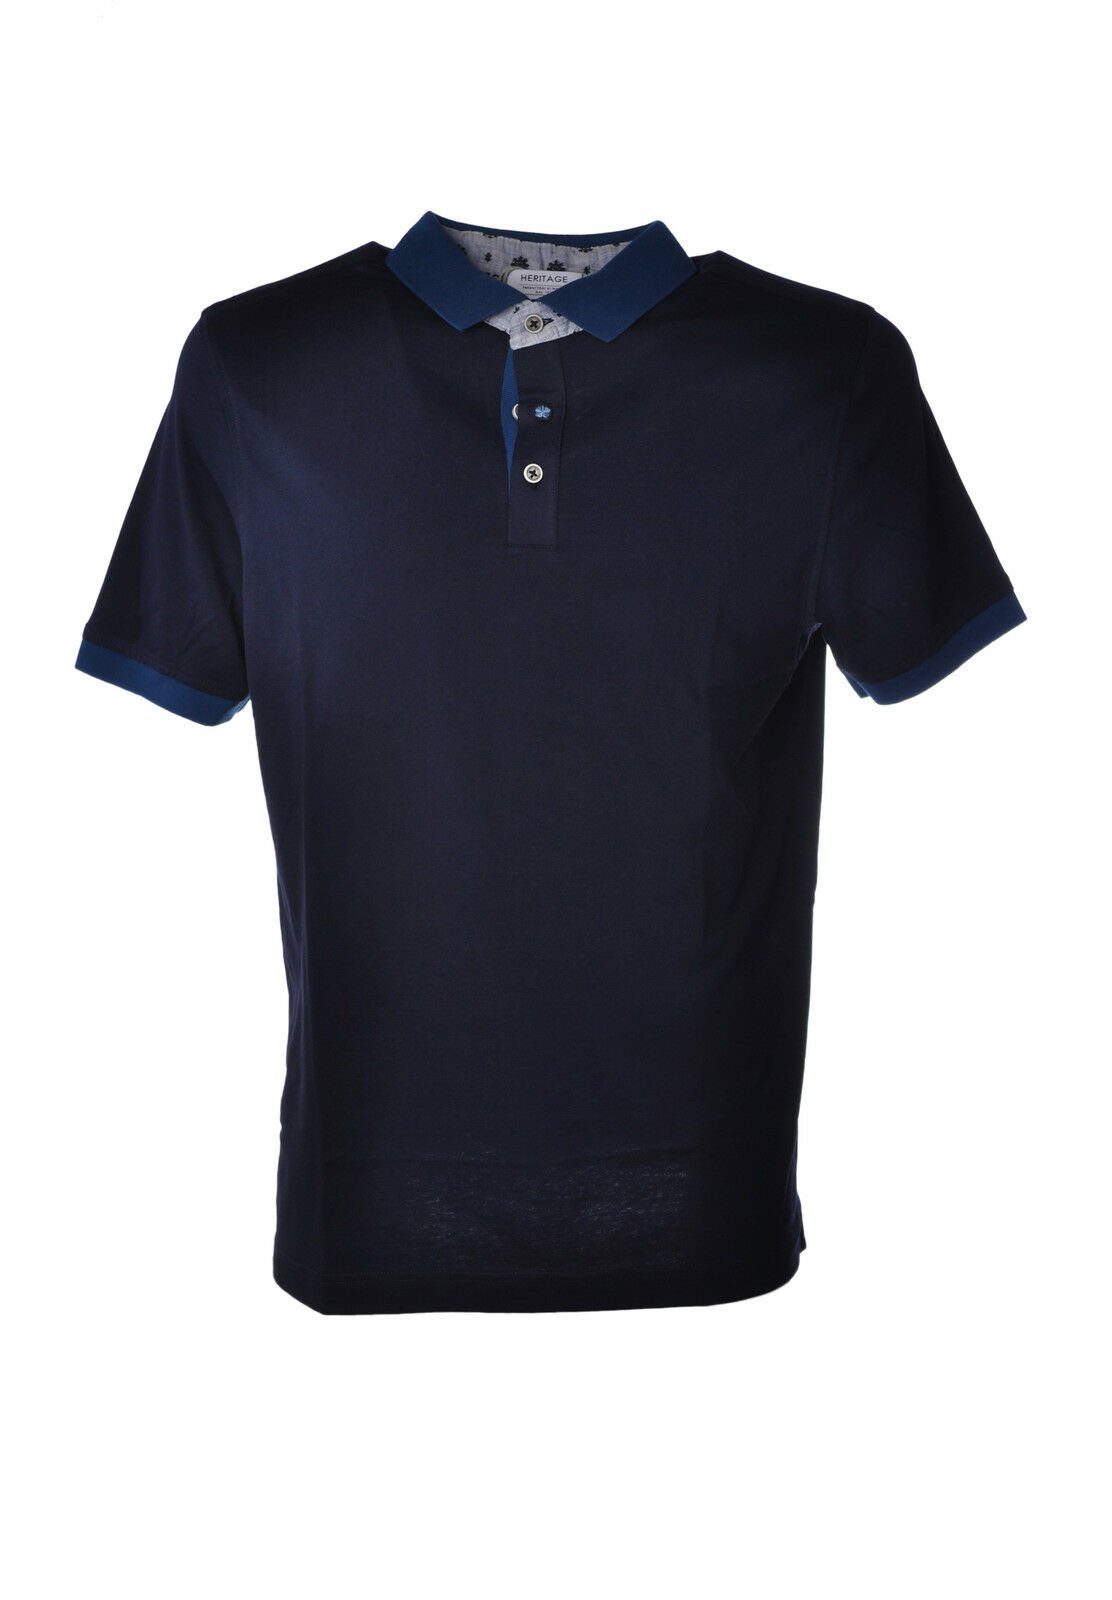 Heritage  -  Polo - Male - bluee - 3503522A181140